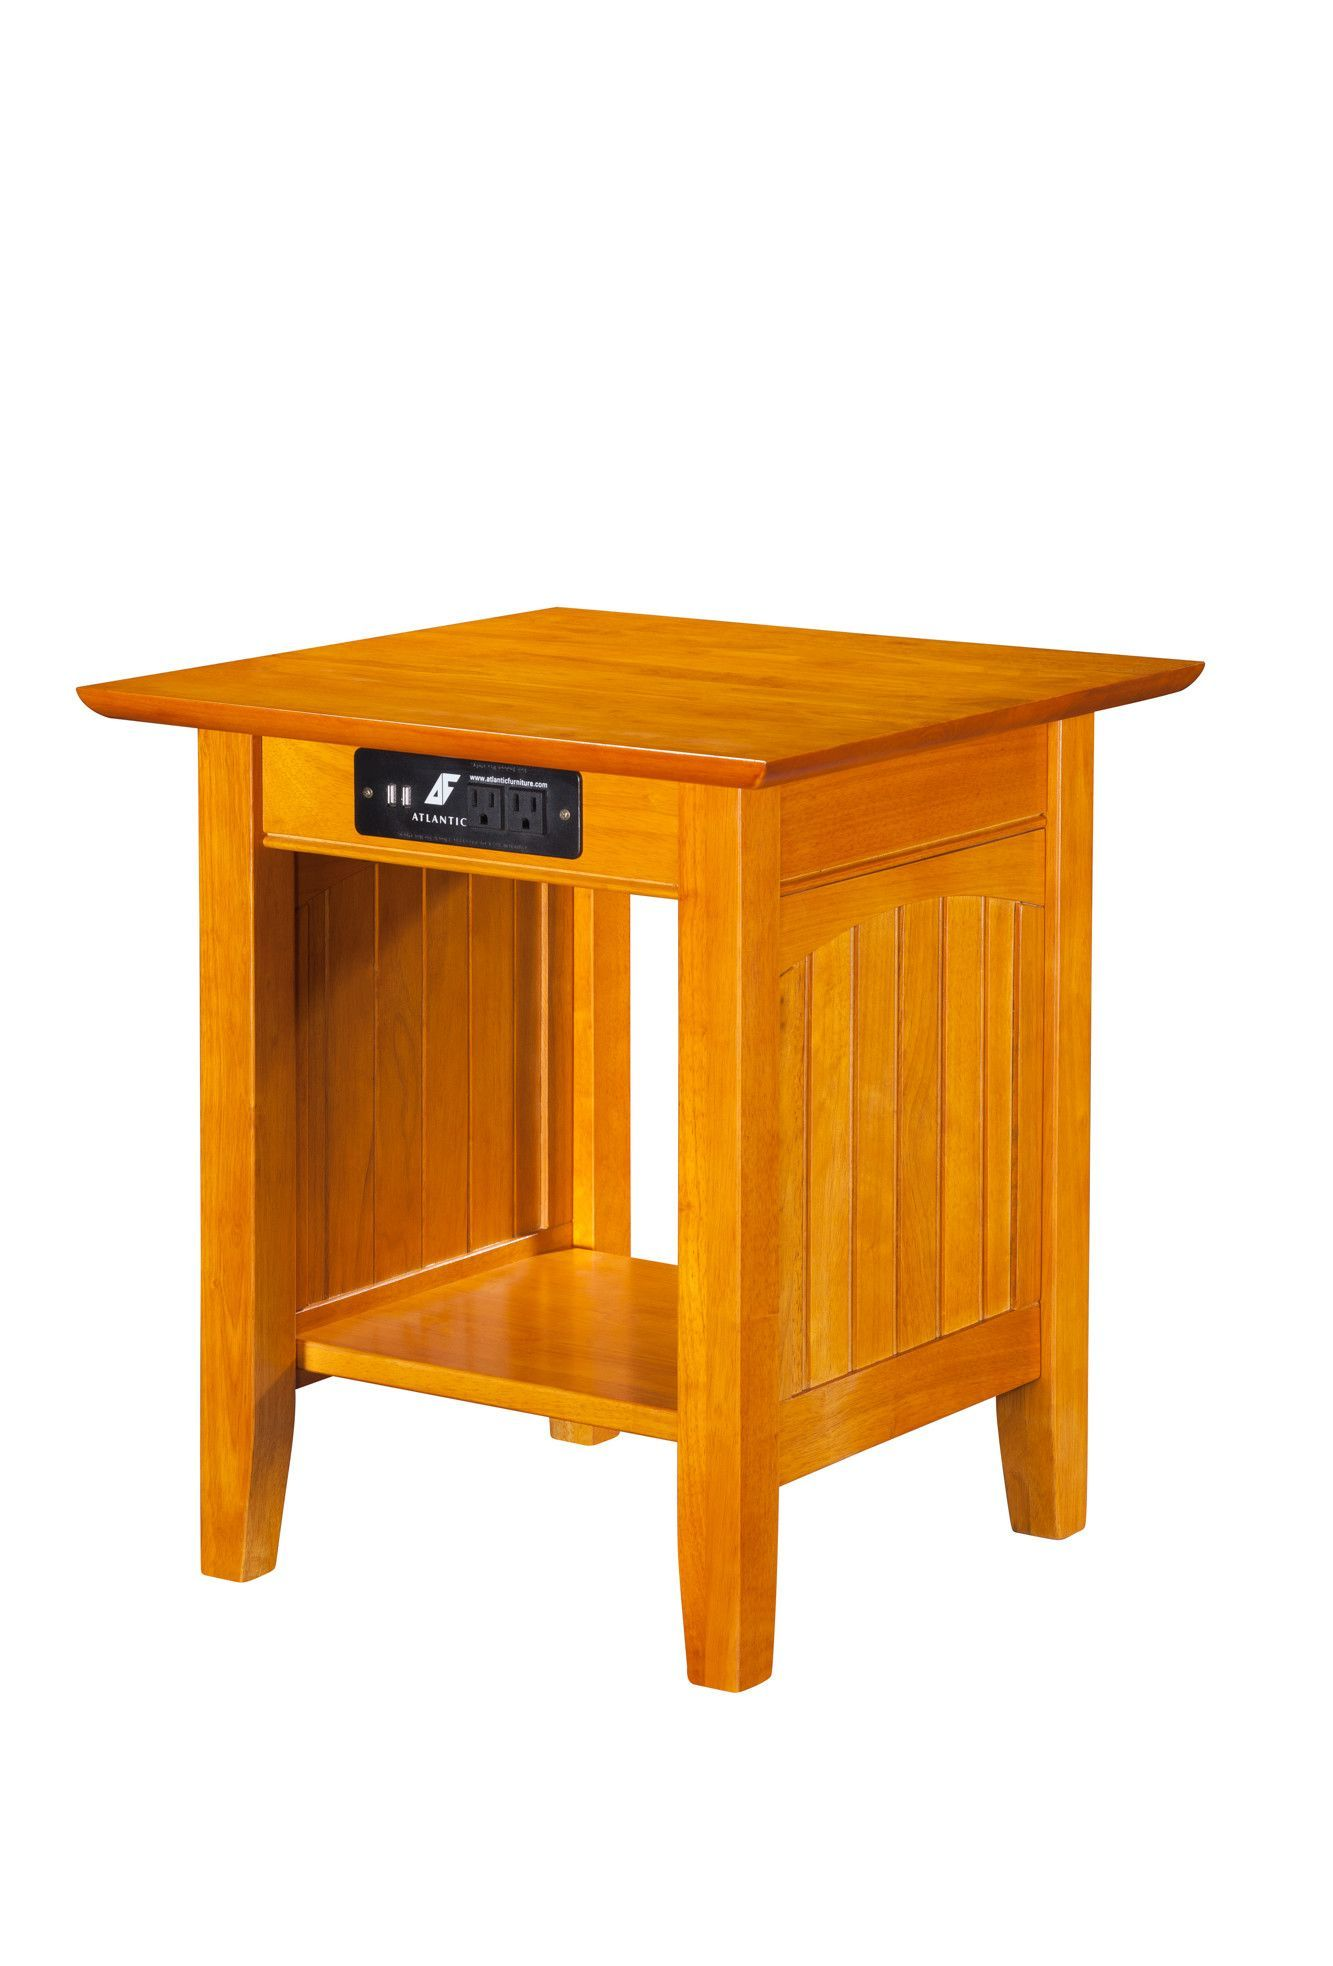 orangetown end table products accent tables with charging station outdoor concrete beech bedside cream and wood coffee glass stacking pineapple lights safavieh gold mirror top